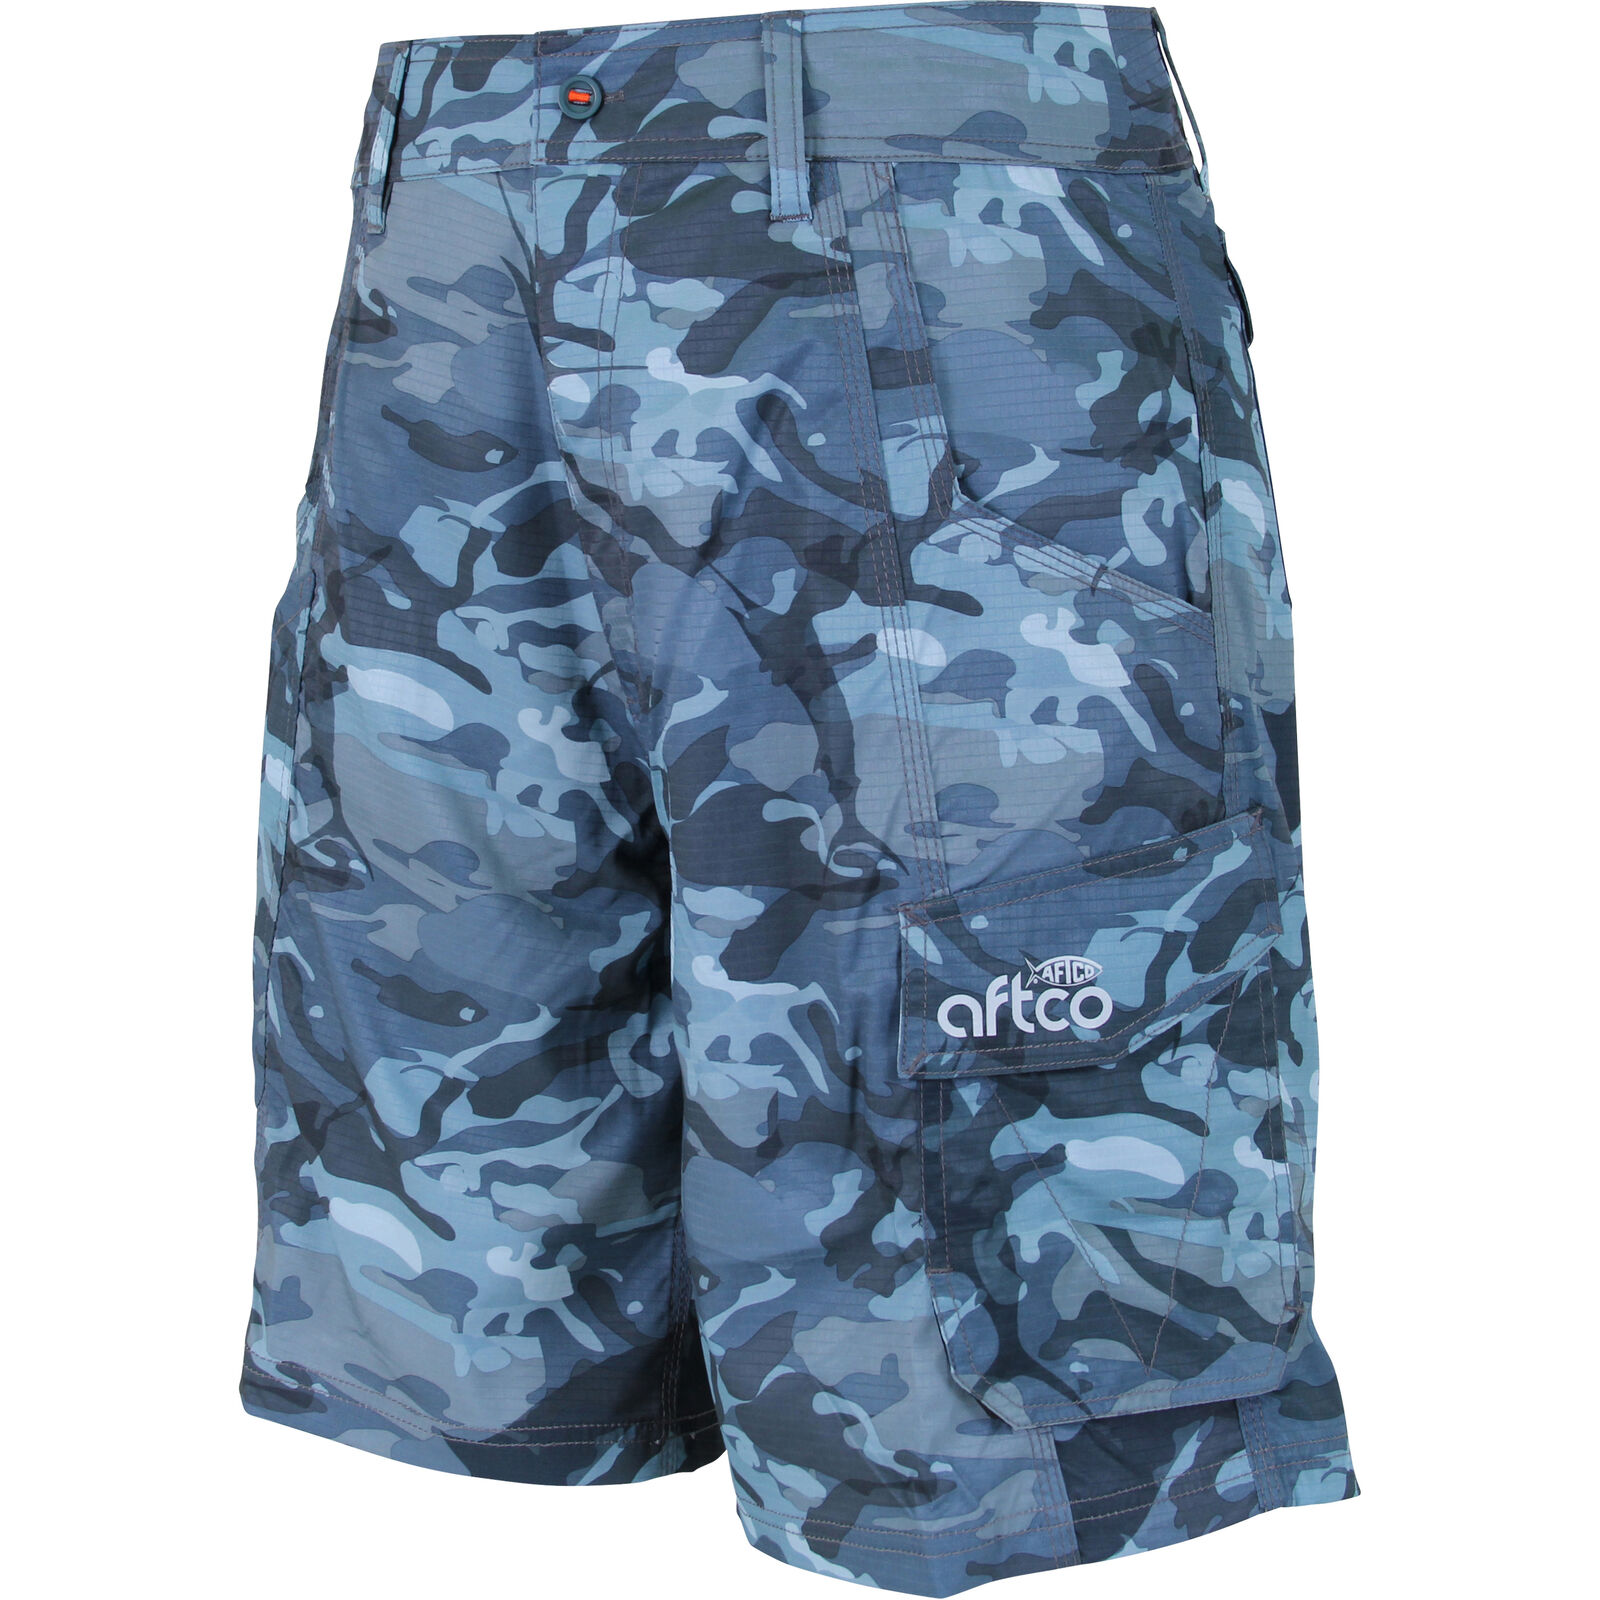 AFTCO Tactical Fishing Short, bluee Camo, 38